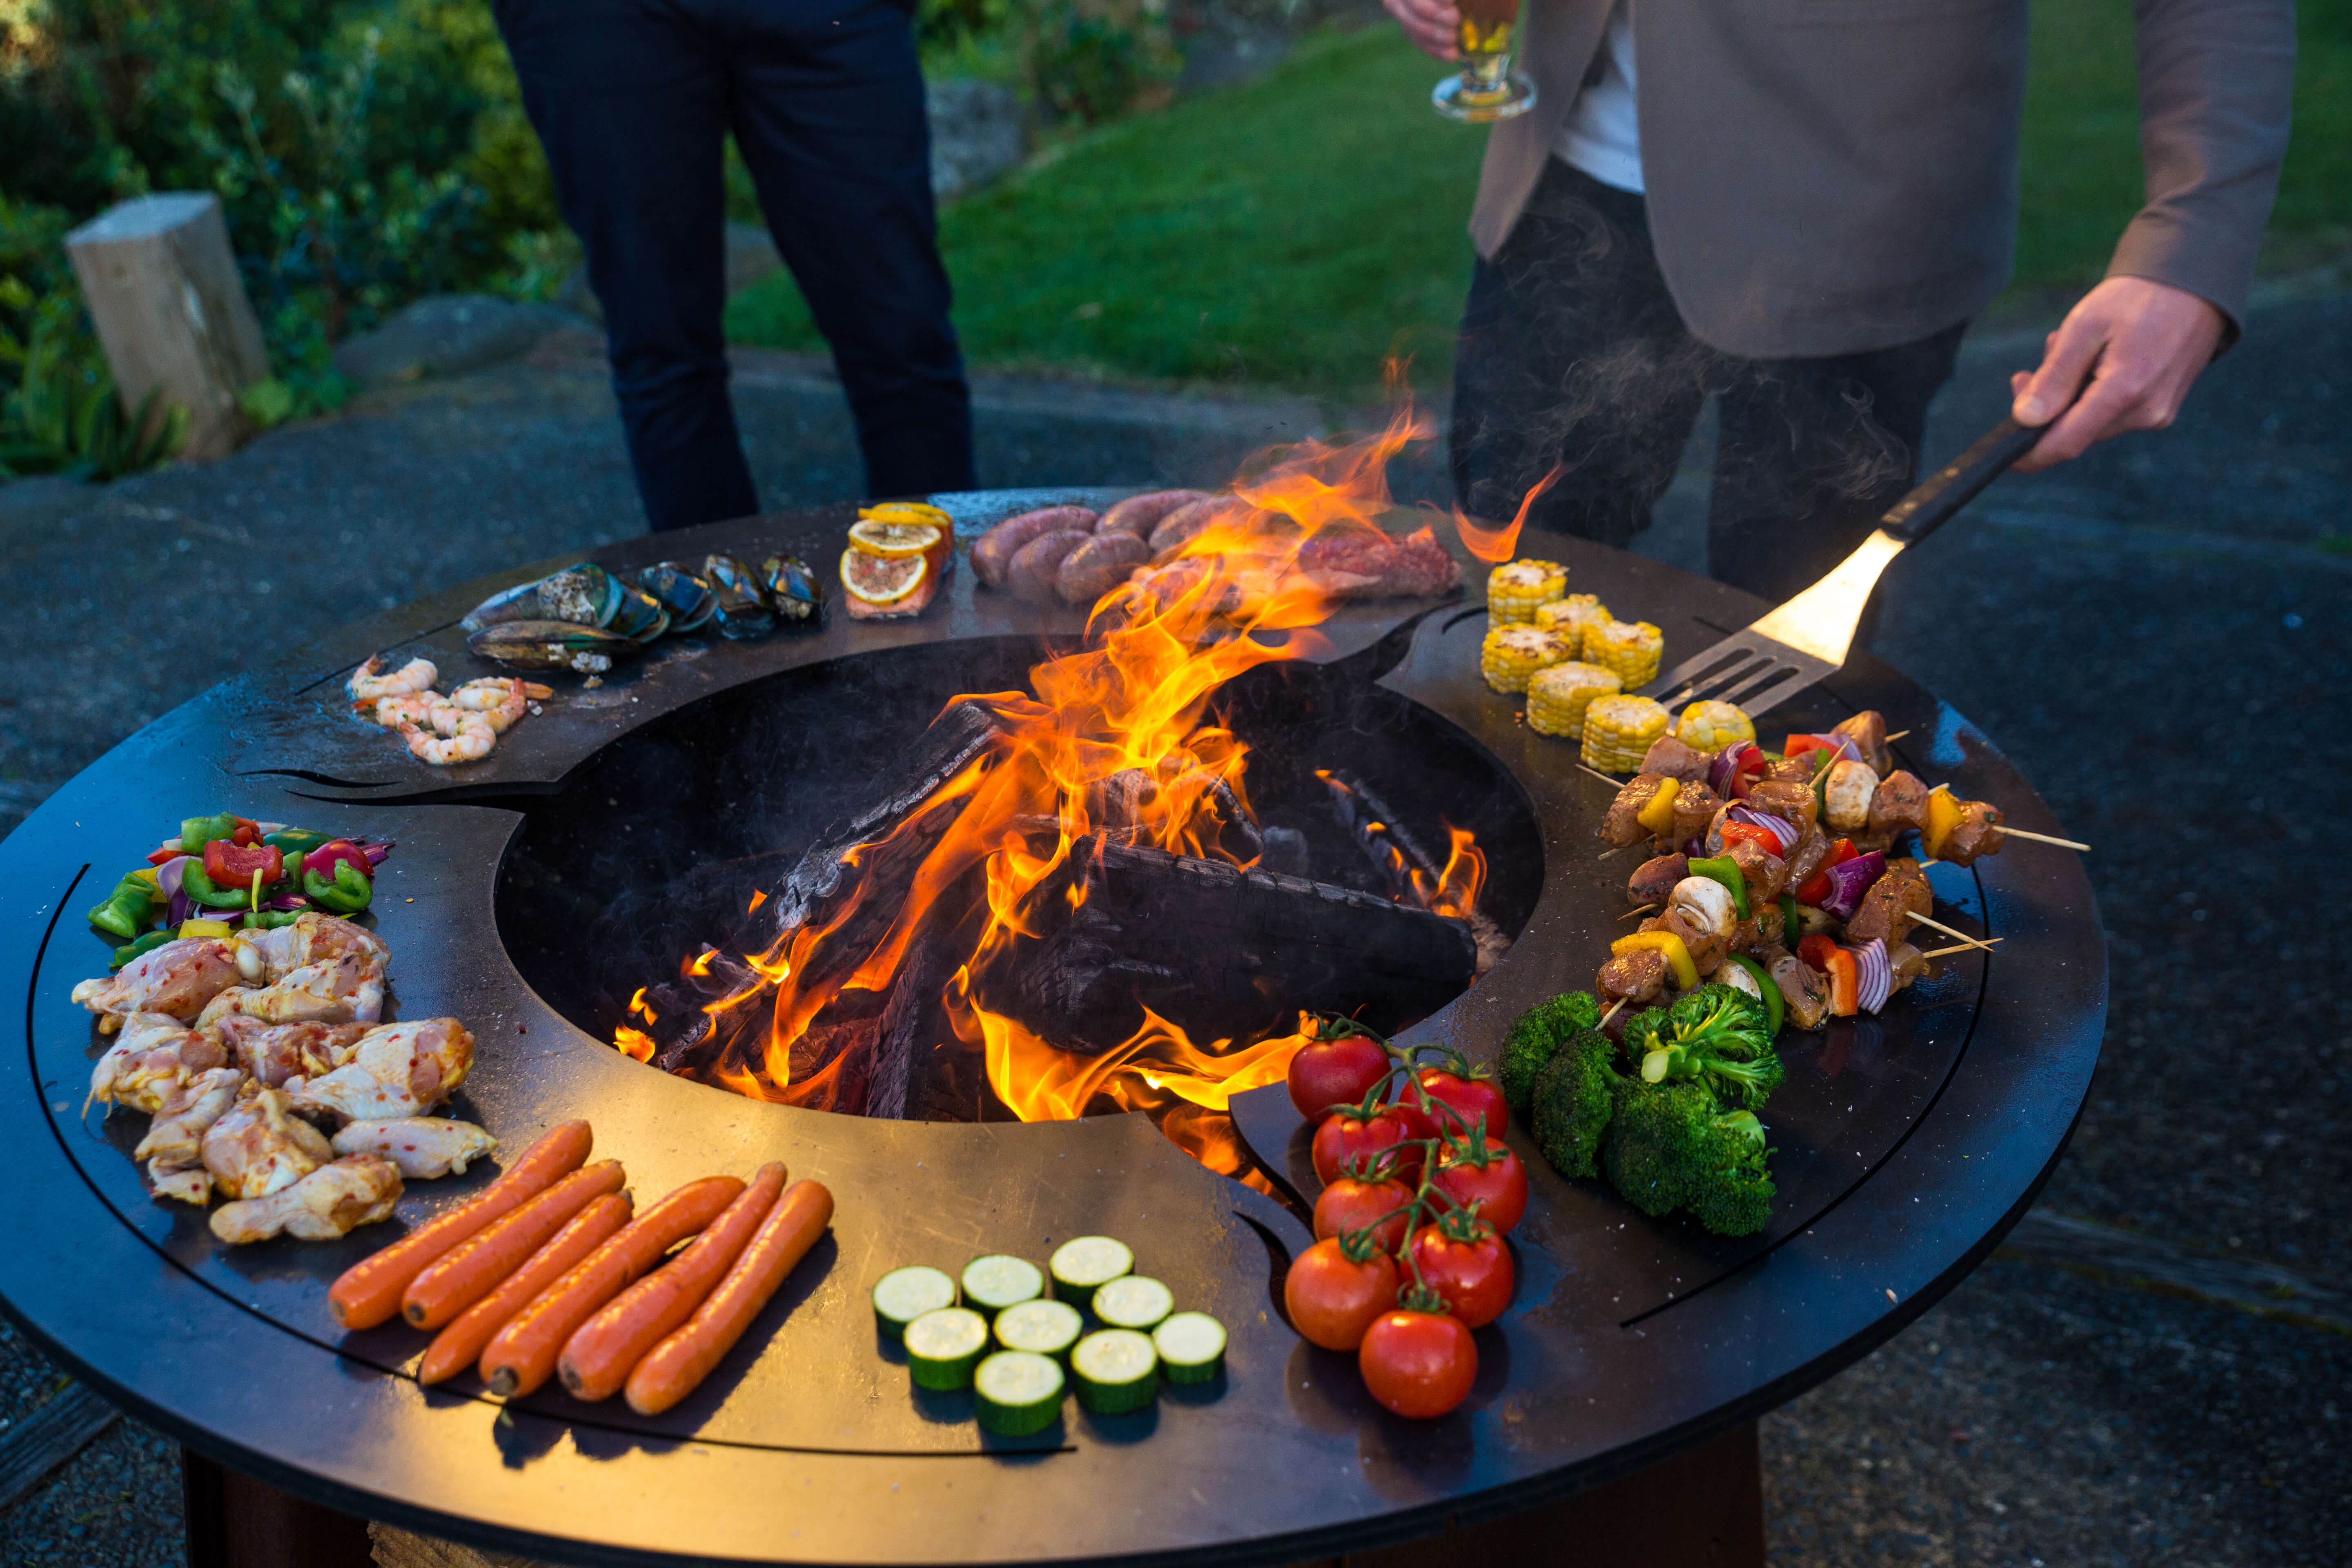 Cooking on a firepit